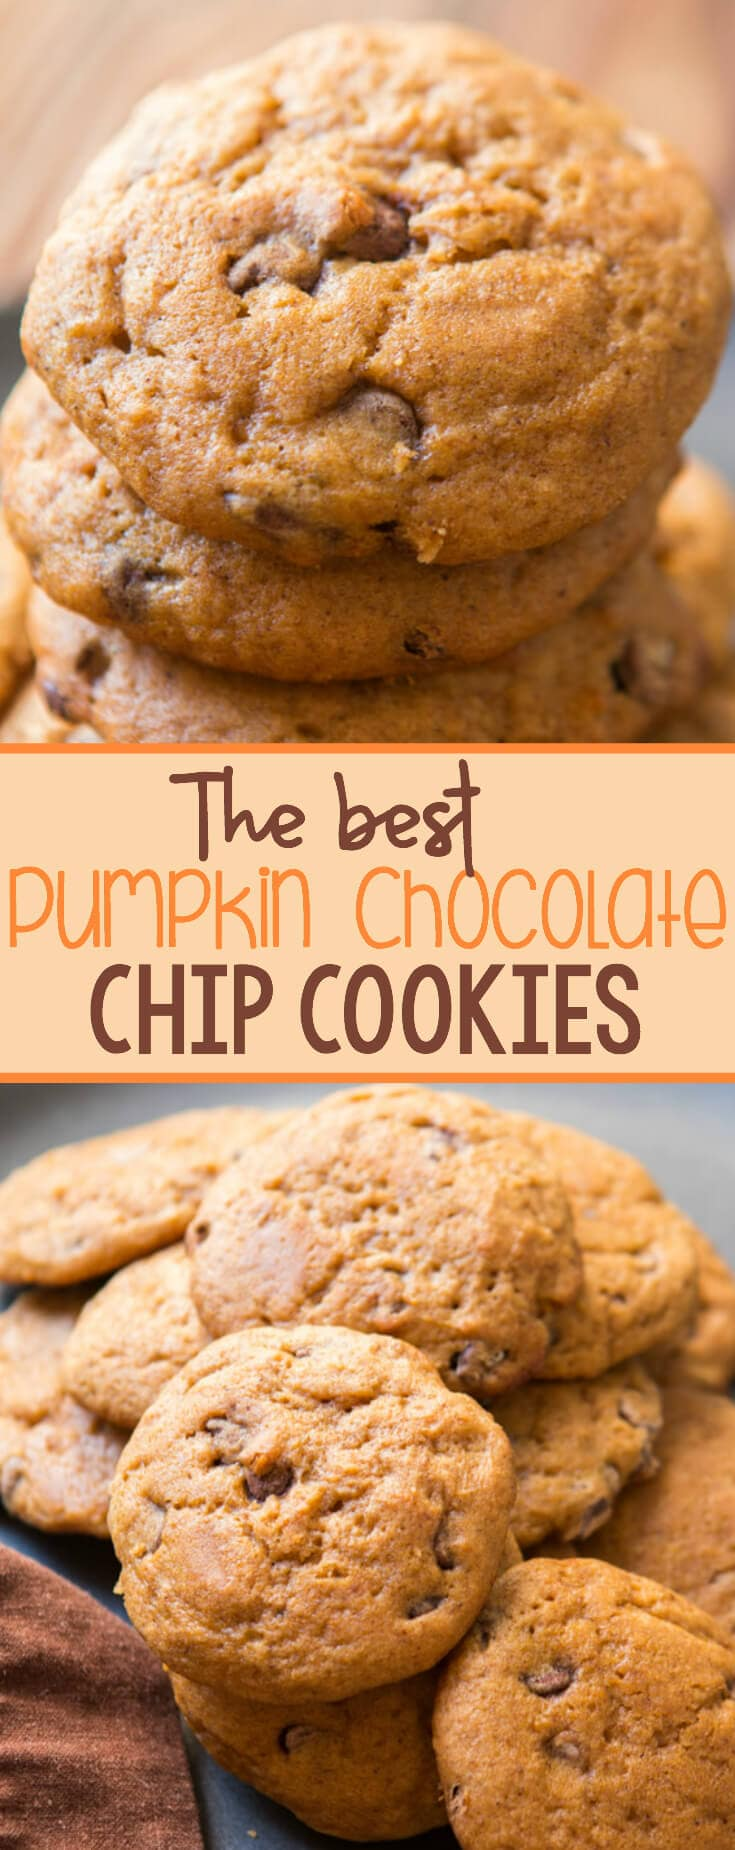 We searched for the best pumpkin chocolate chip cookies recipe and today we are sharing it with all of you!!